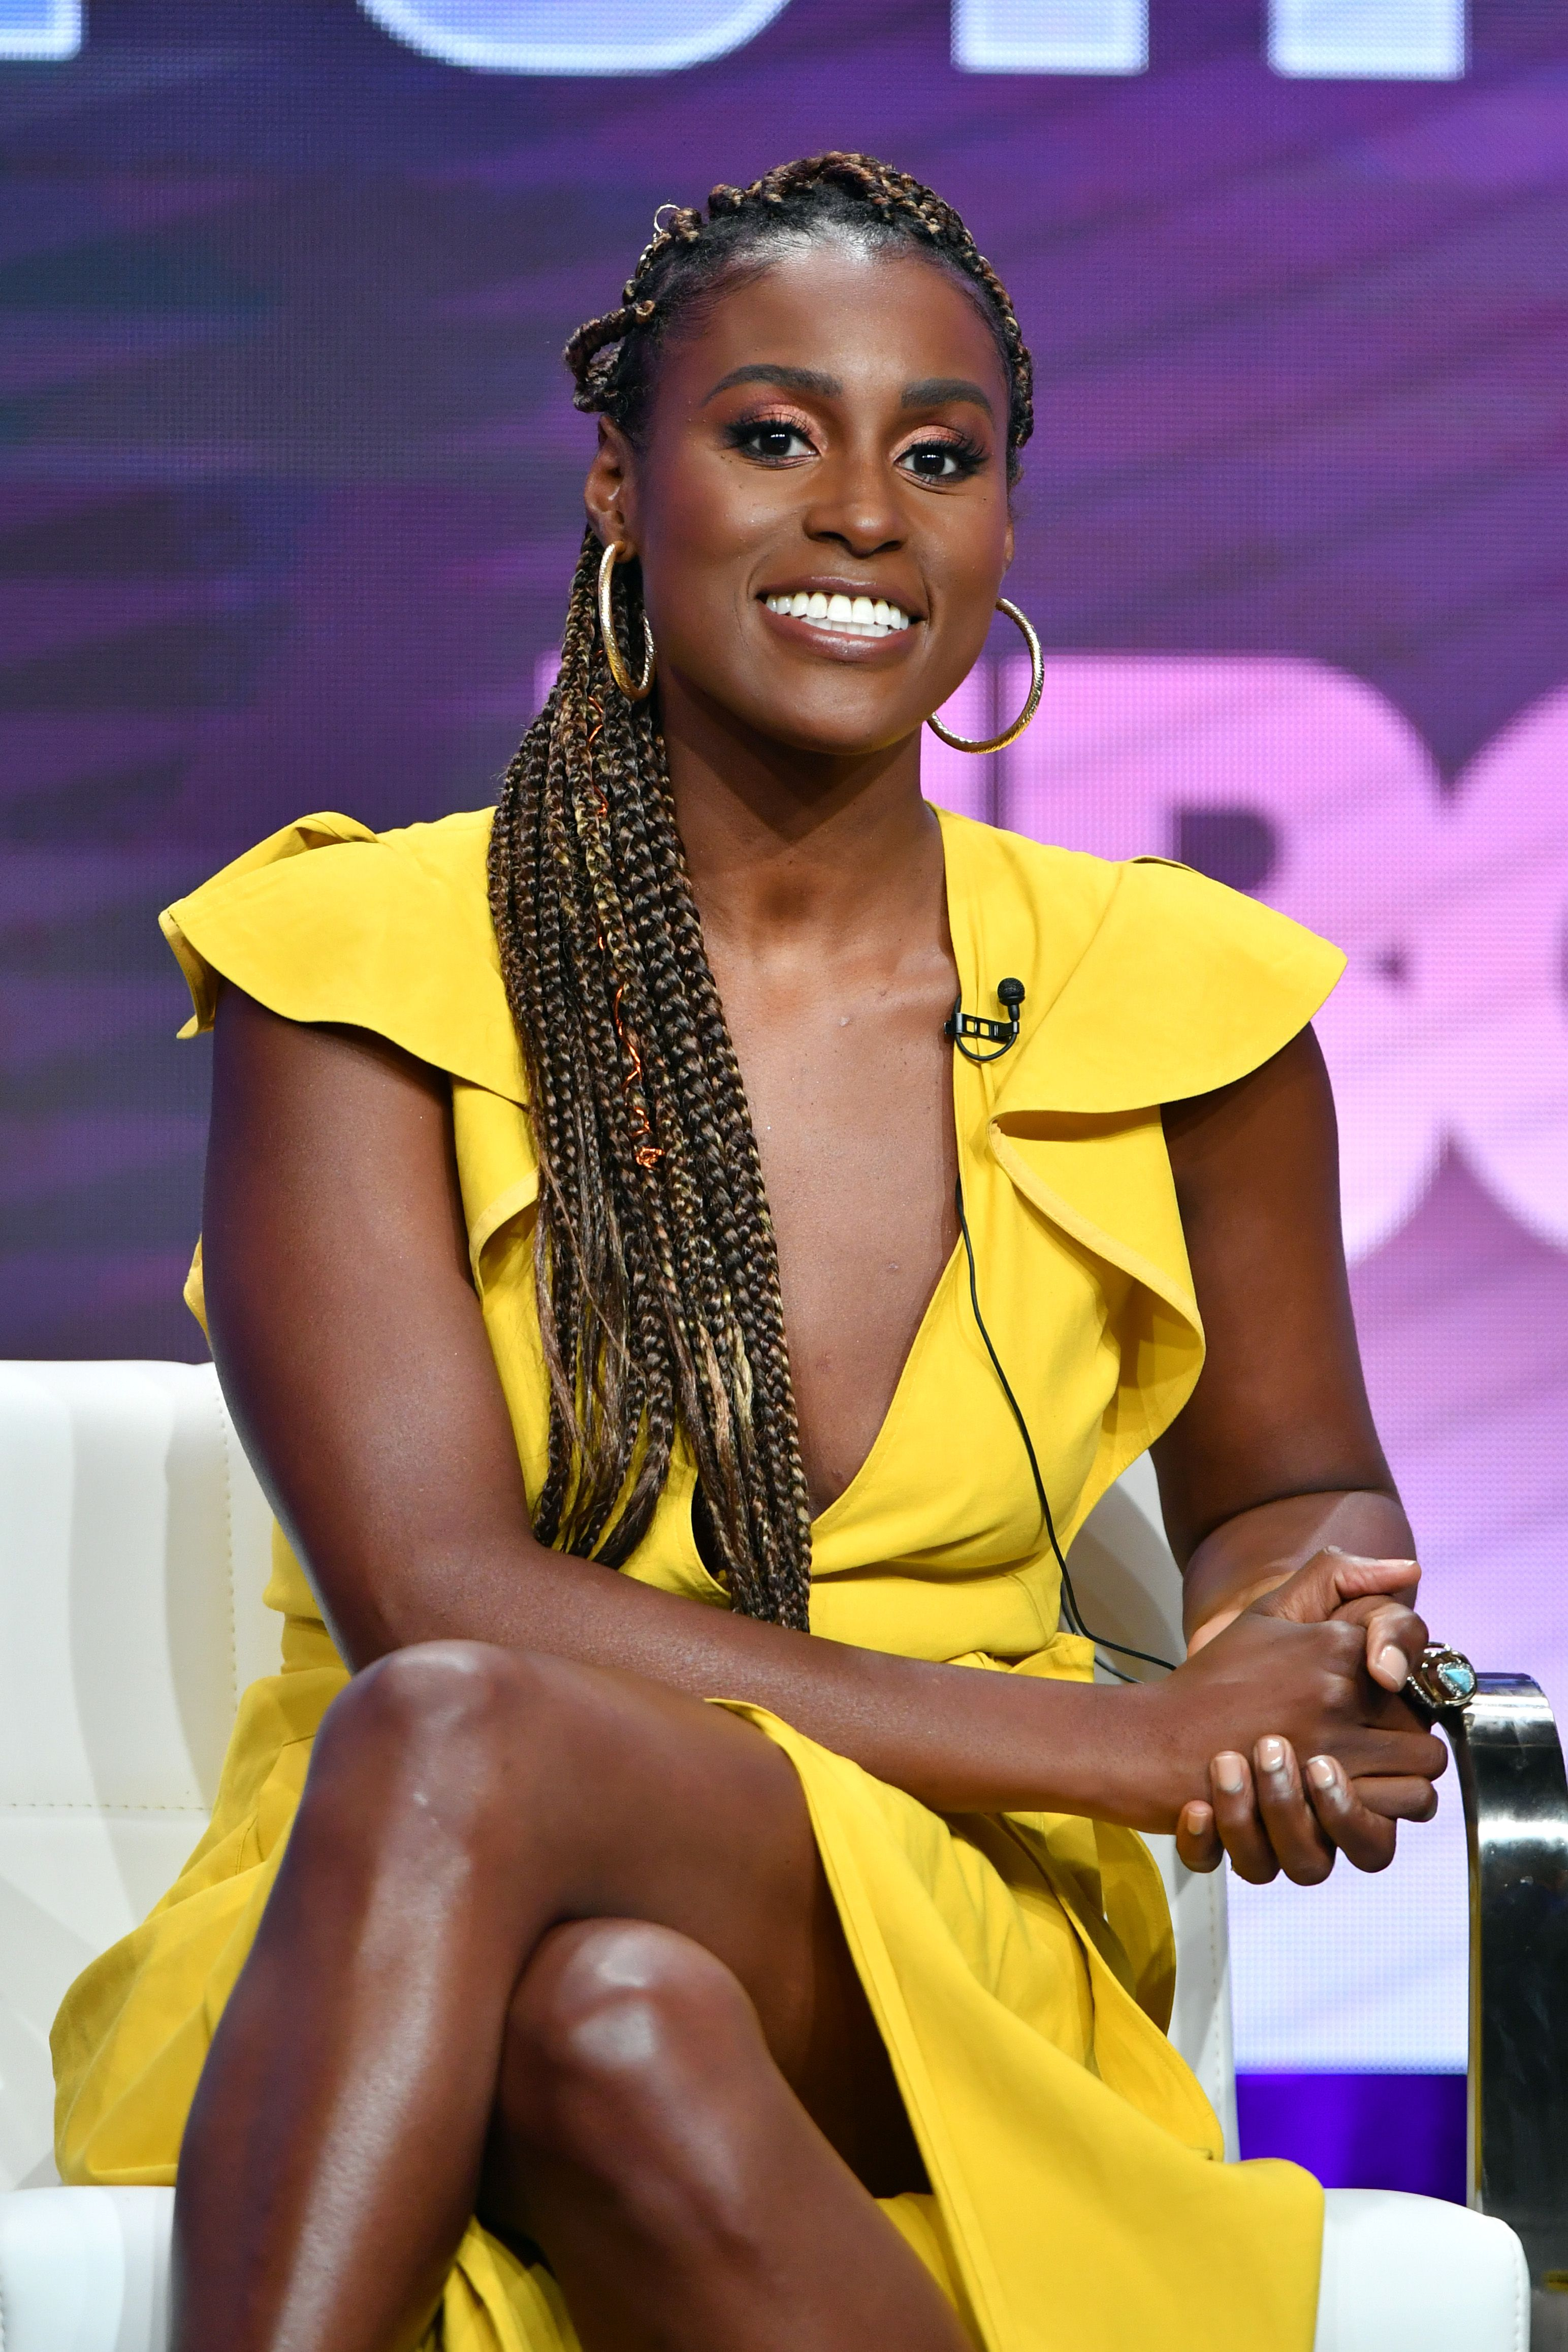 Issa Rae at HBO segment of the Summer 2019 Television Critics Association Press Tour in Beverly Hills on July 24, 2019.    Photo: Getty Images